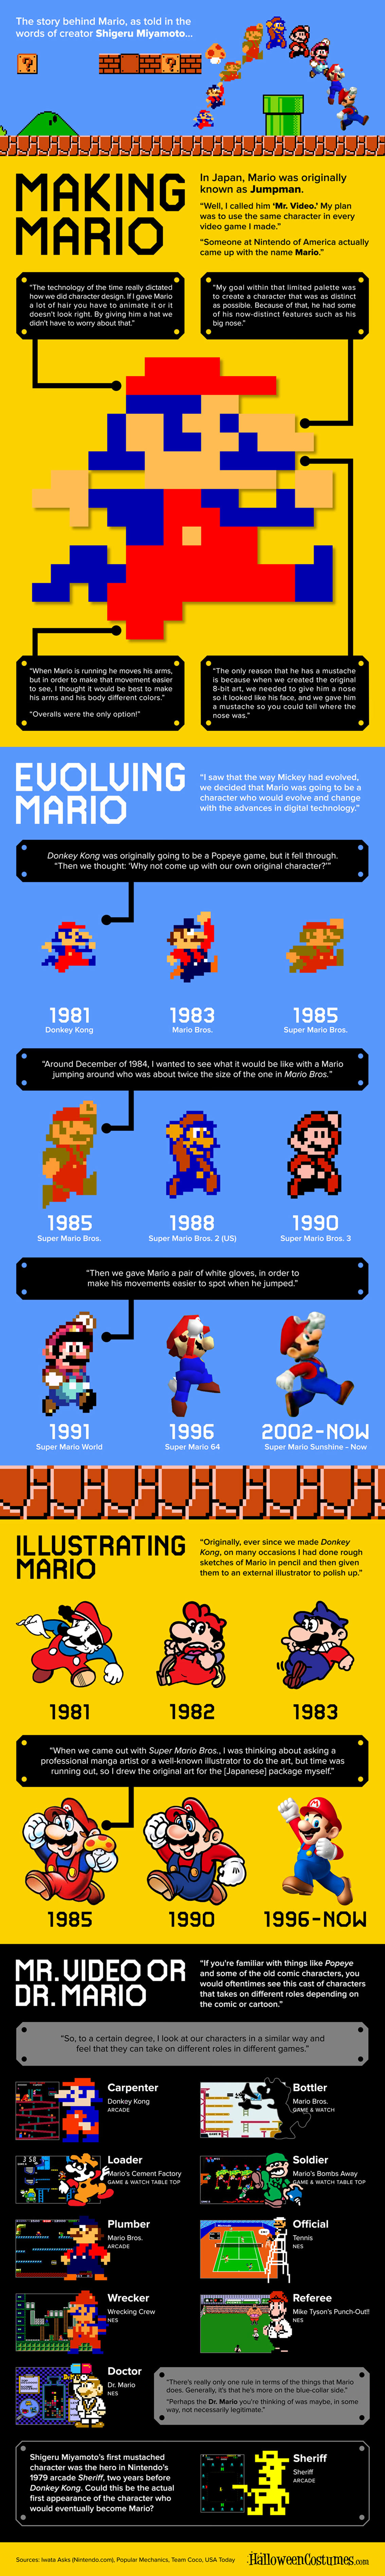 Making Mario - Evolution of a Video Game Icon infographic